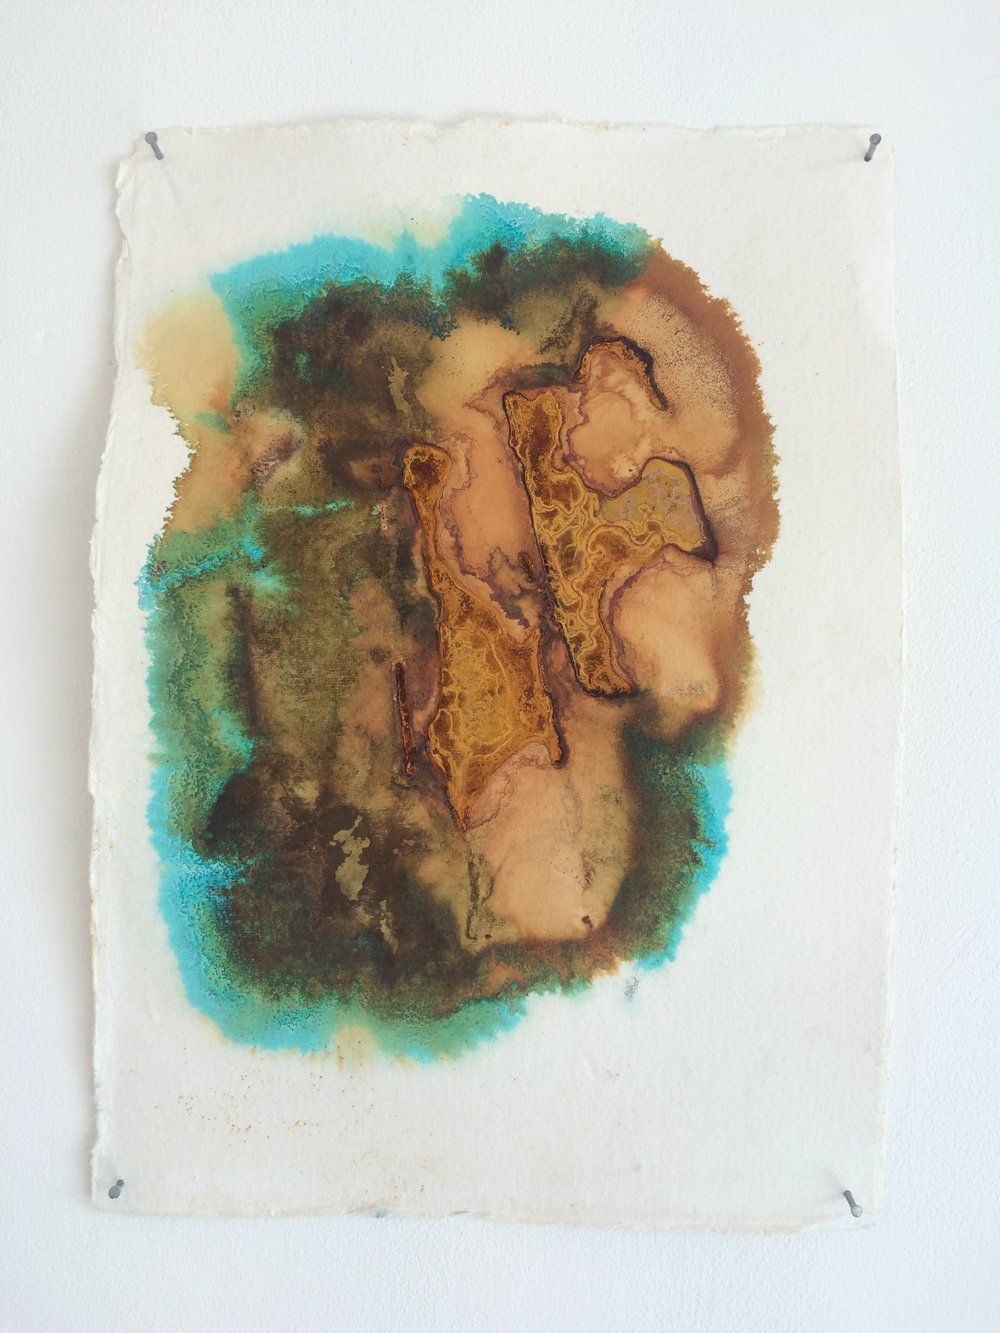 Oxidised Metal on Paper (2015)